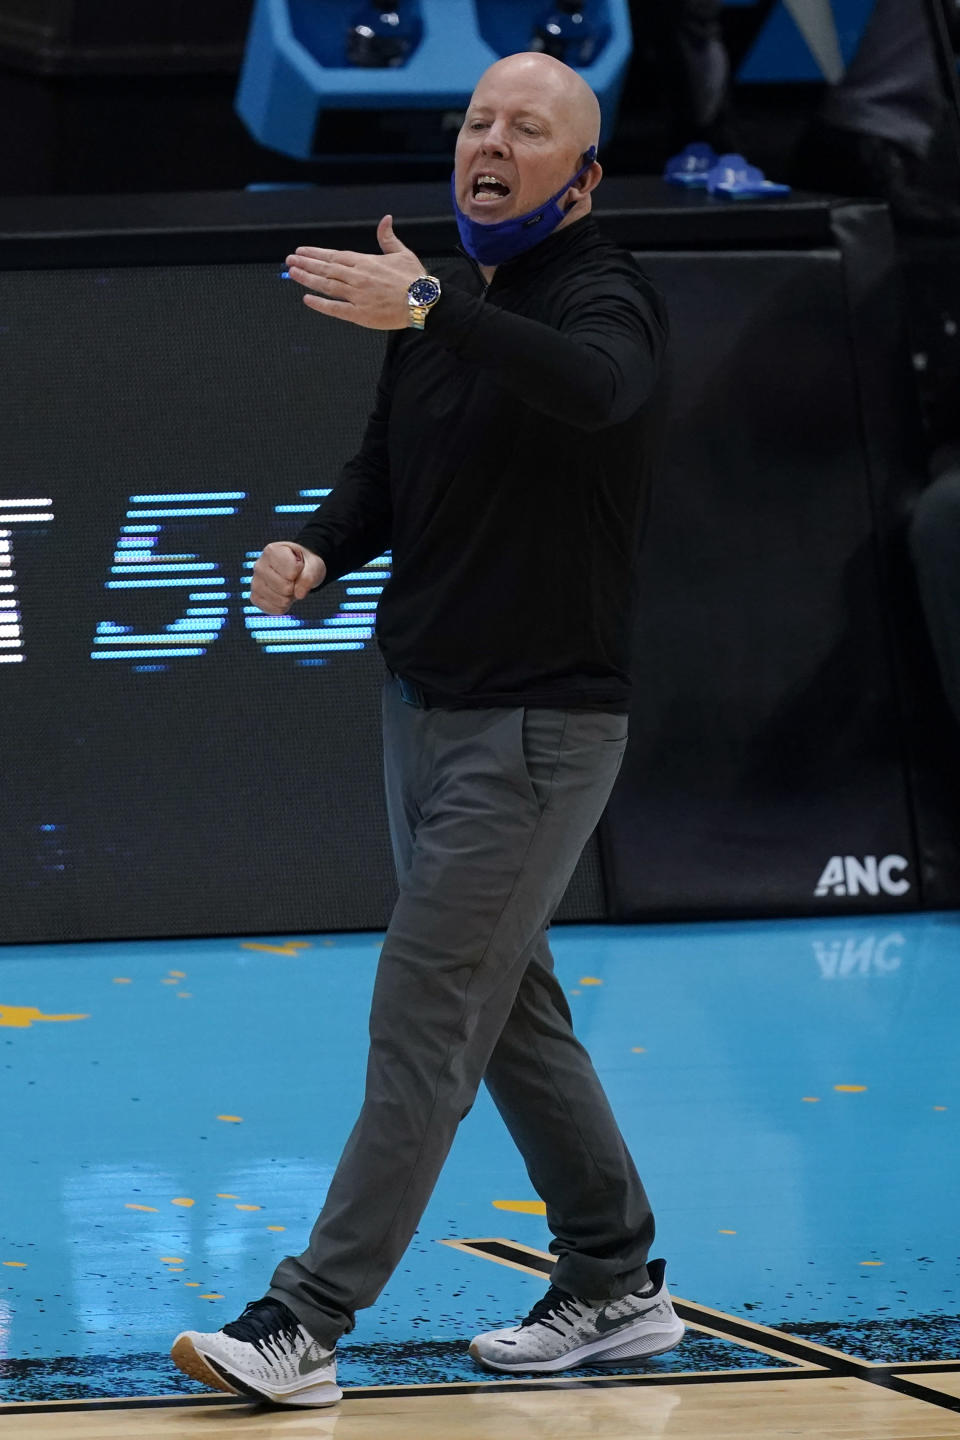 UCLA head coach Mick Cronin directs his team during the first half of a men's Final Four NCAA college basketball tournament semifinal game against Gonzaga, Saturday, April 3, 2021, at Lucas Oil Stadium in Indianapolis. (AP Photo/Michael Conroy)